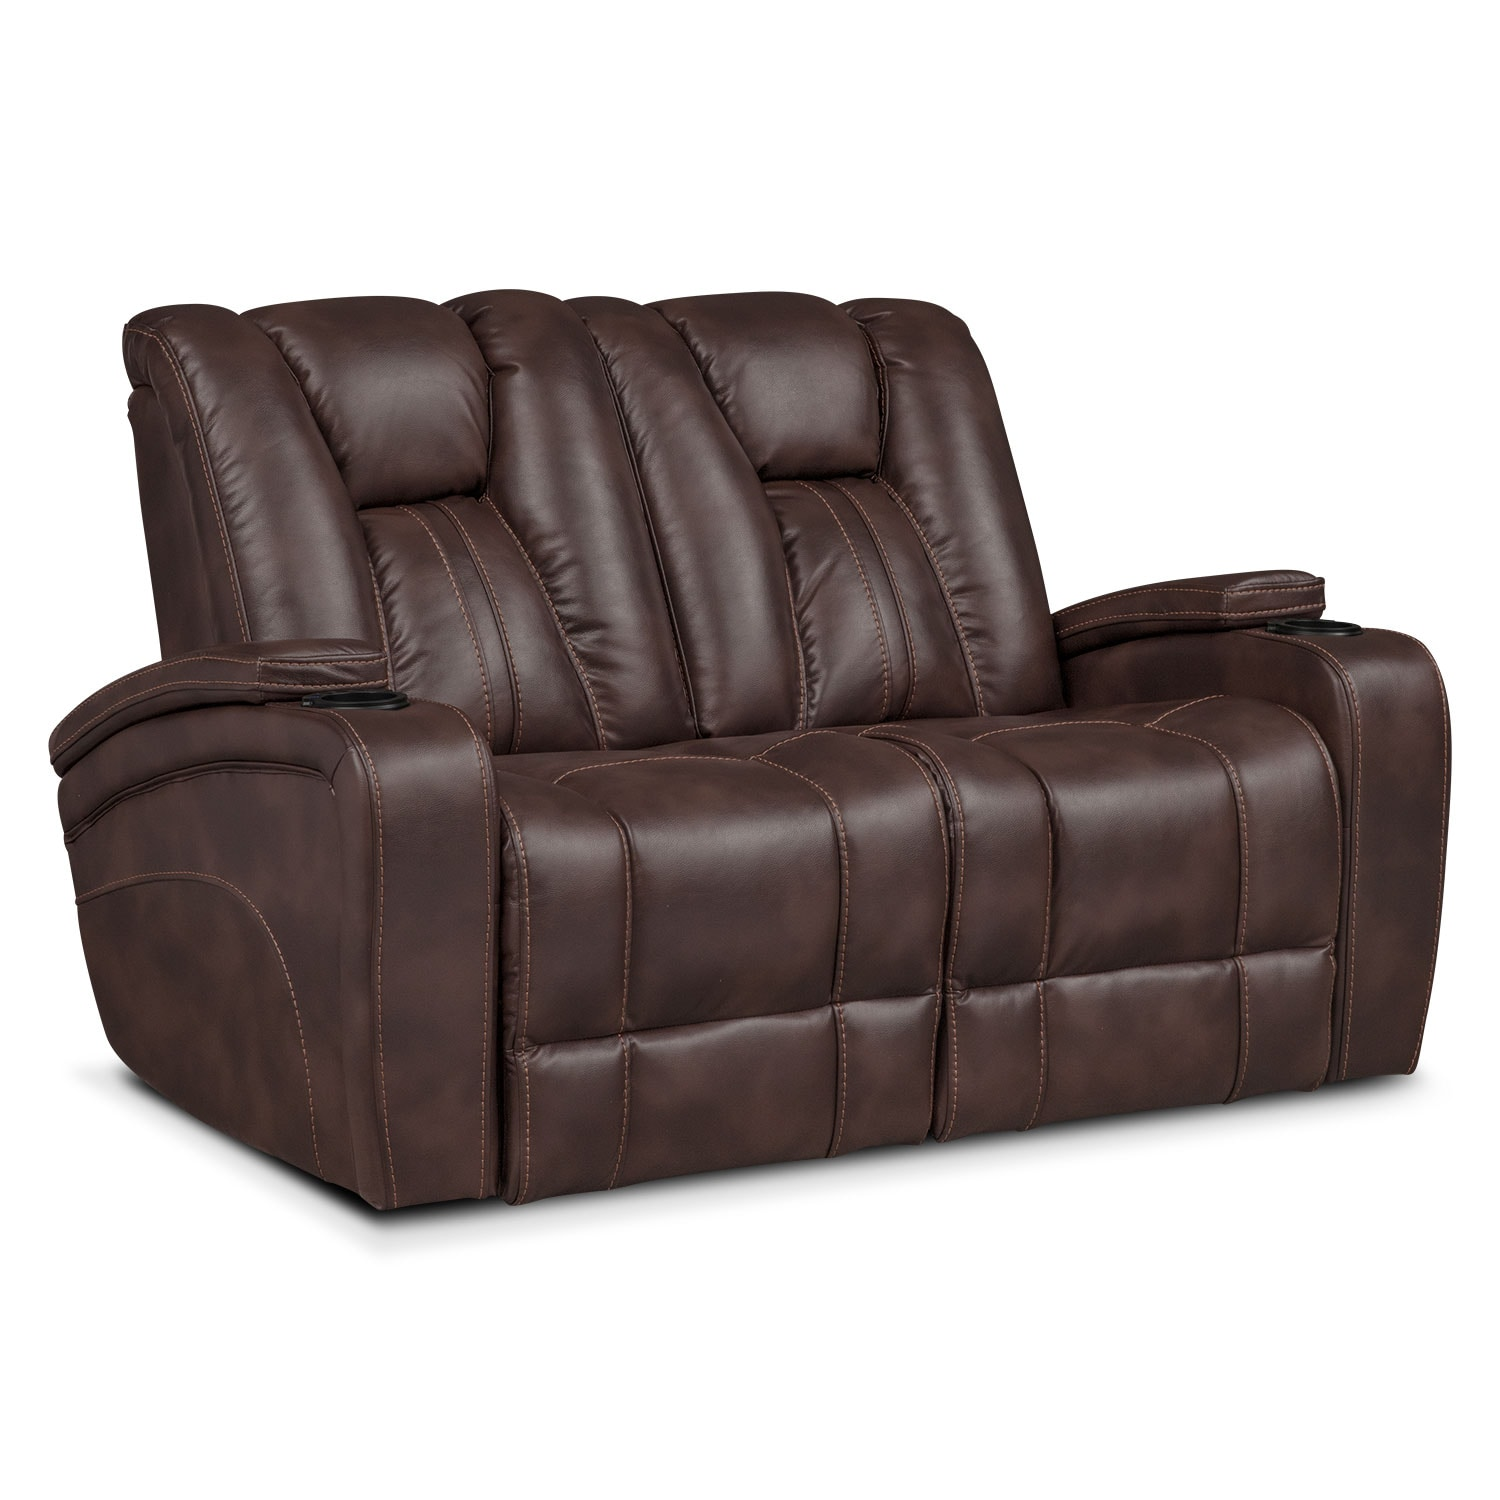 Pulsar Power Reclining Sofa, Power Reclining Loveseat And